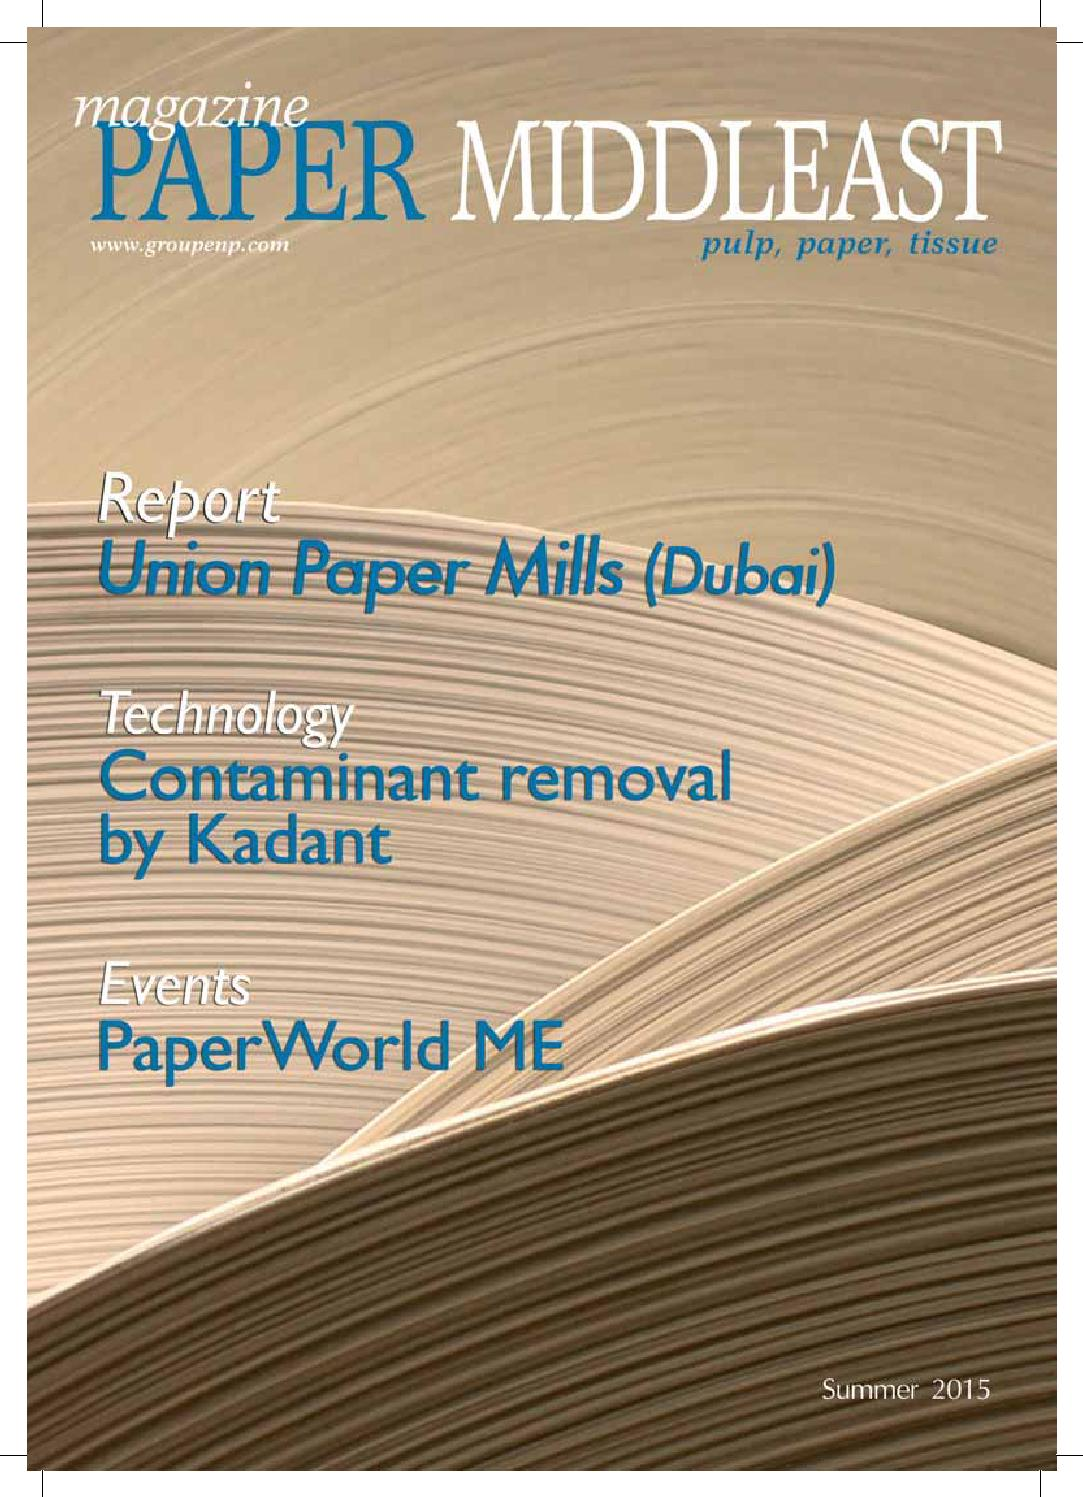 Paper MiddlEast 26 Summer 2015 by ENP Publishing - issuu